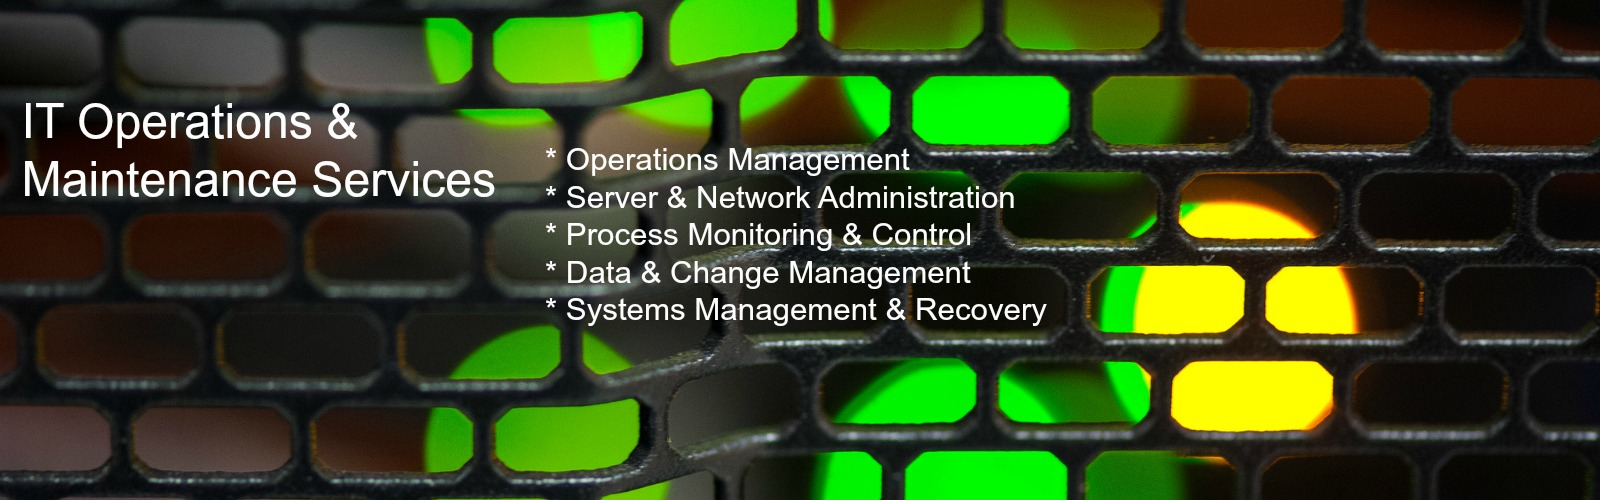 IT Operations & Maintenance Services